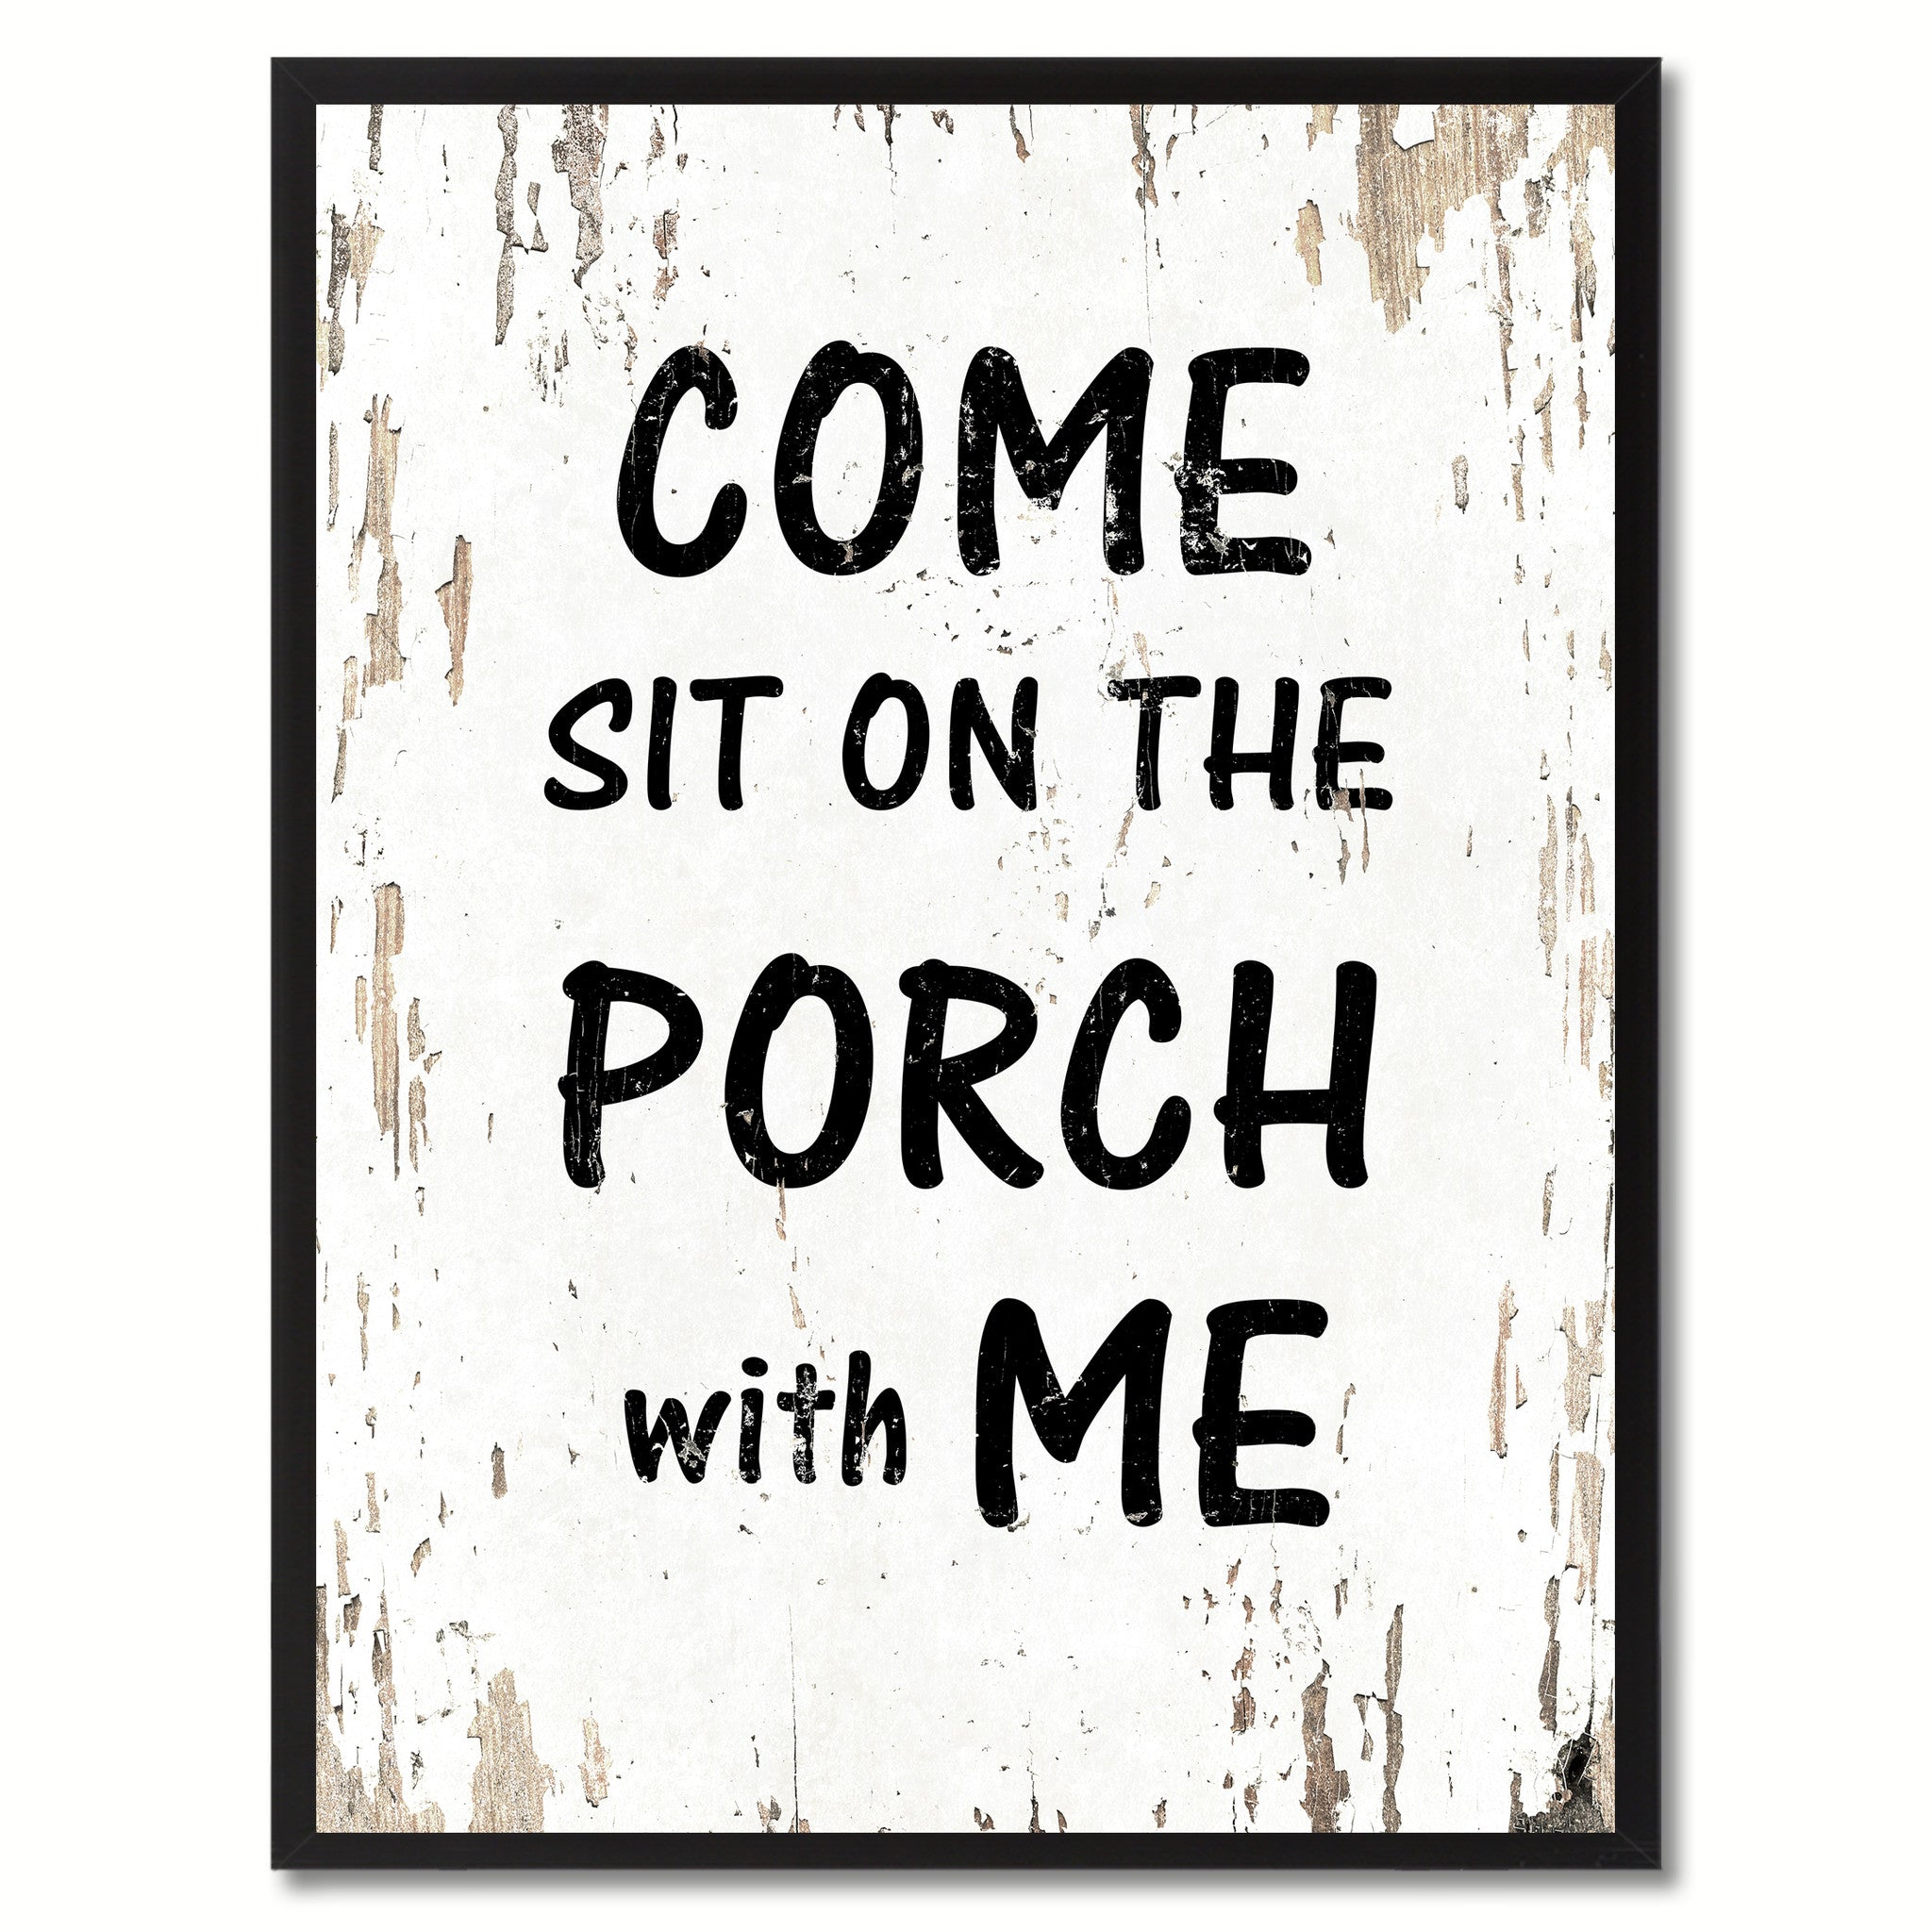 Come Sit On The Porch With Me Saying Canvas Print, Black Picture Frame Home Decor Wall Art Gifts